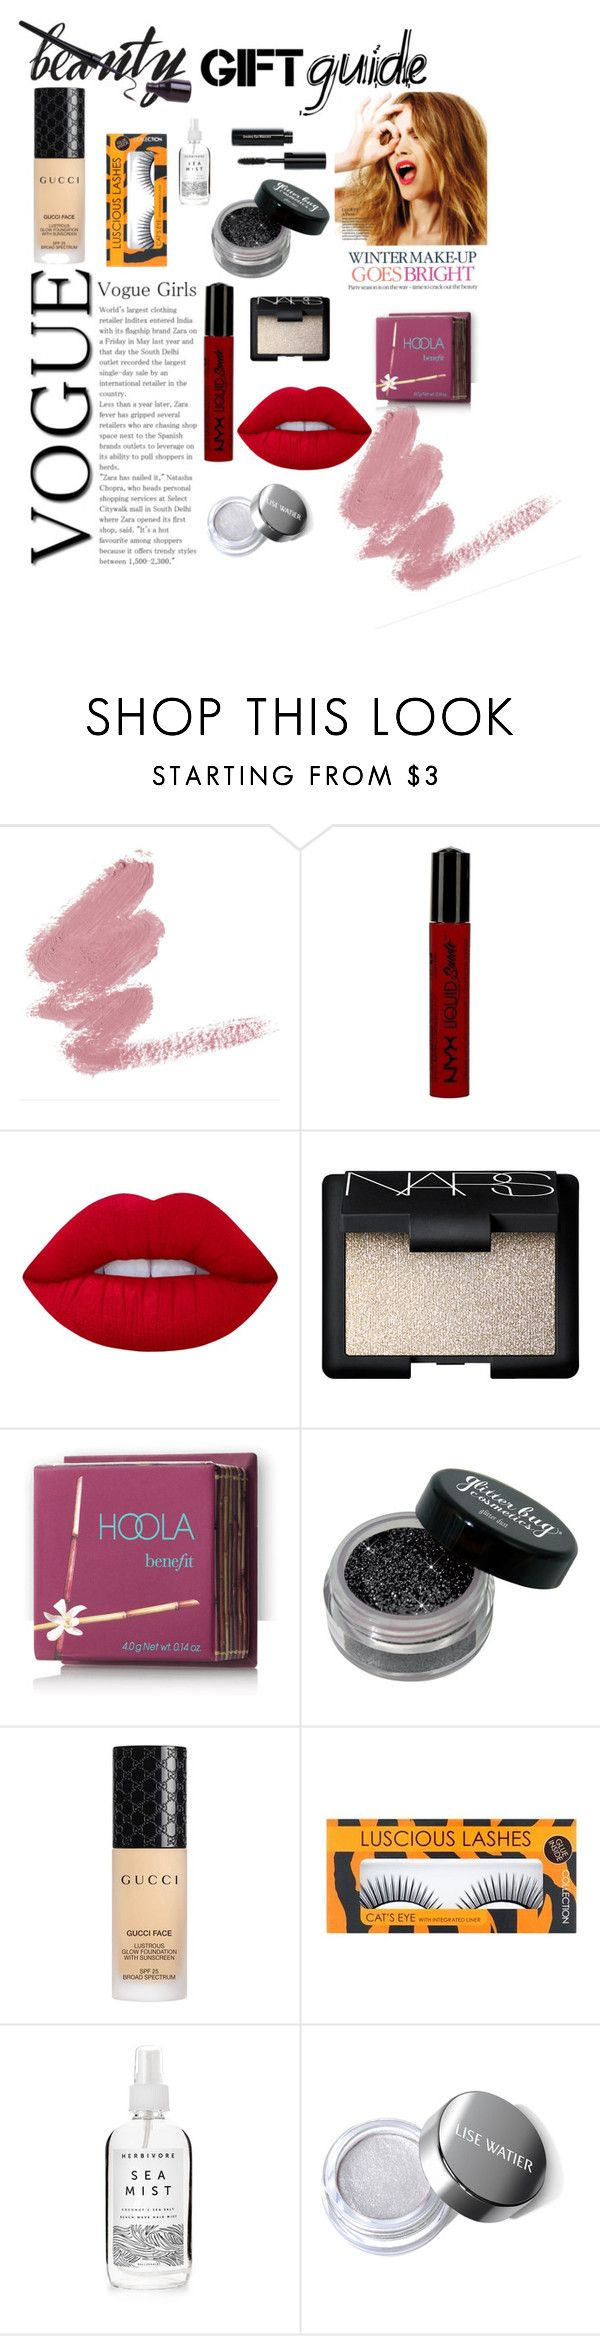 """""""Christmas gift guide"""" by wheresmaryjane ❤ liked on Polyvore featuring beauty, Celestine, NYX, Lime Crime, NARS Cosmetics, Hoola, Gucci, Herbivore and Bobbi Brown Cosmetics"""